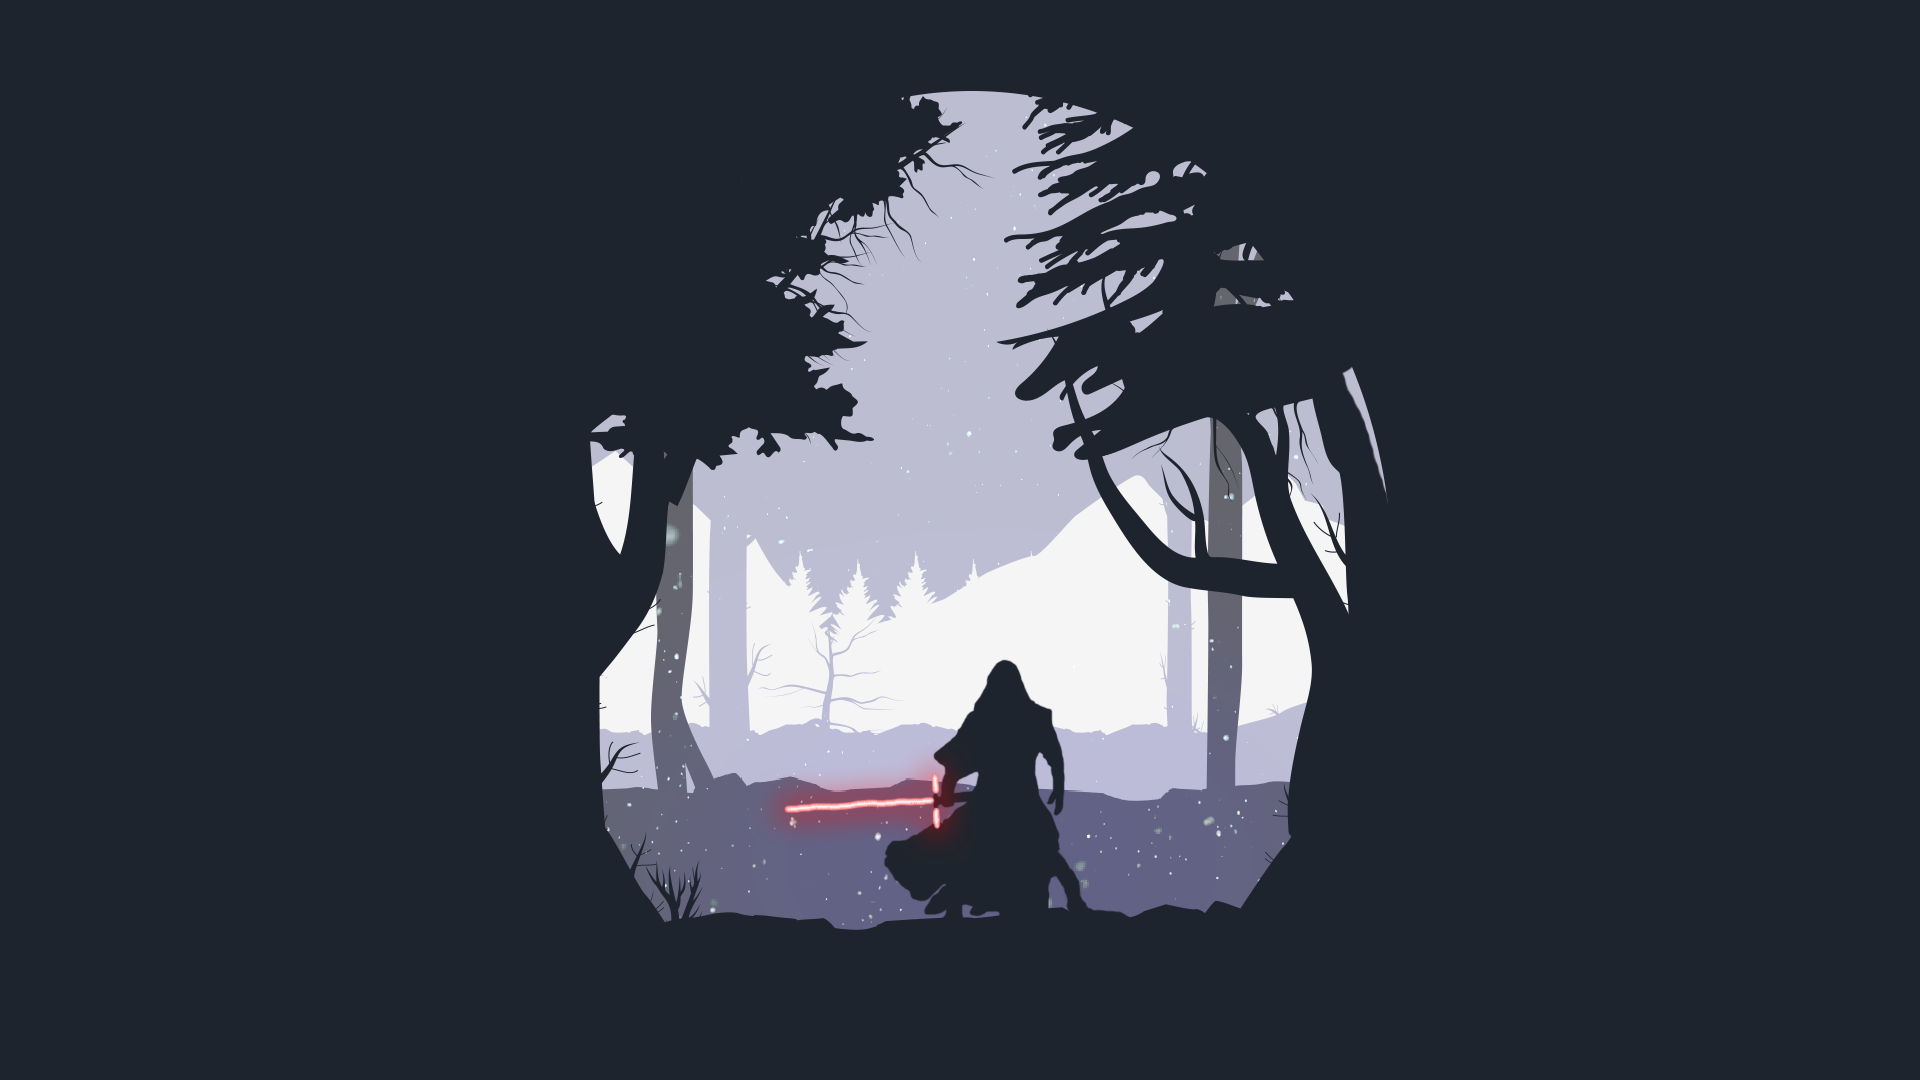 HQ RES Wallpapers of Star Wars